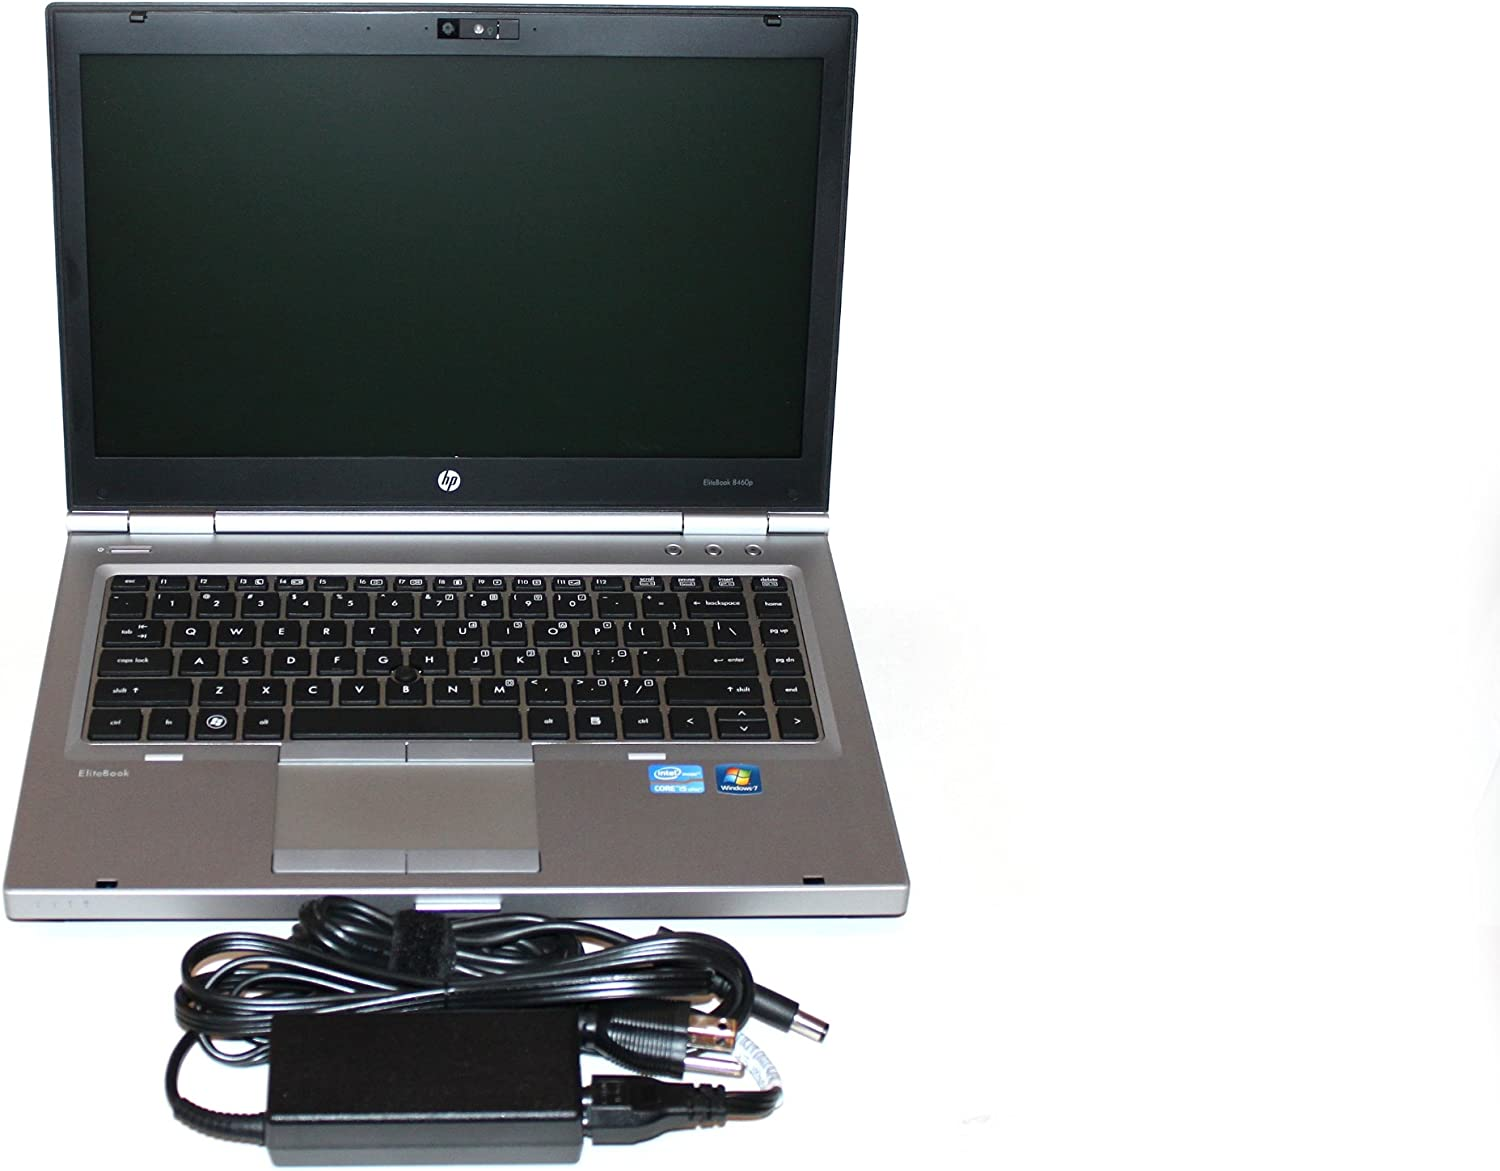 "HP EliteBook 8460p XU057UT 14.0"" LED Notebook - Core i5 i5-2410M 2.30GHz"